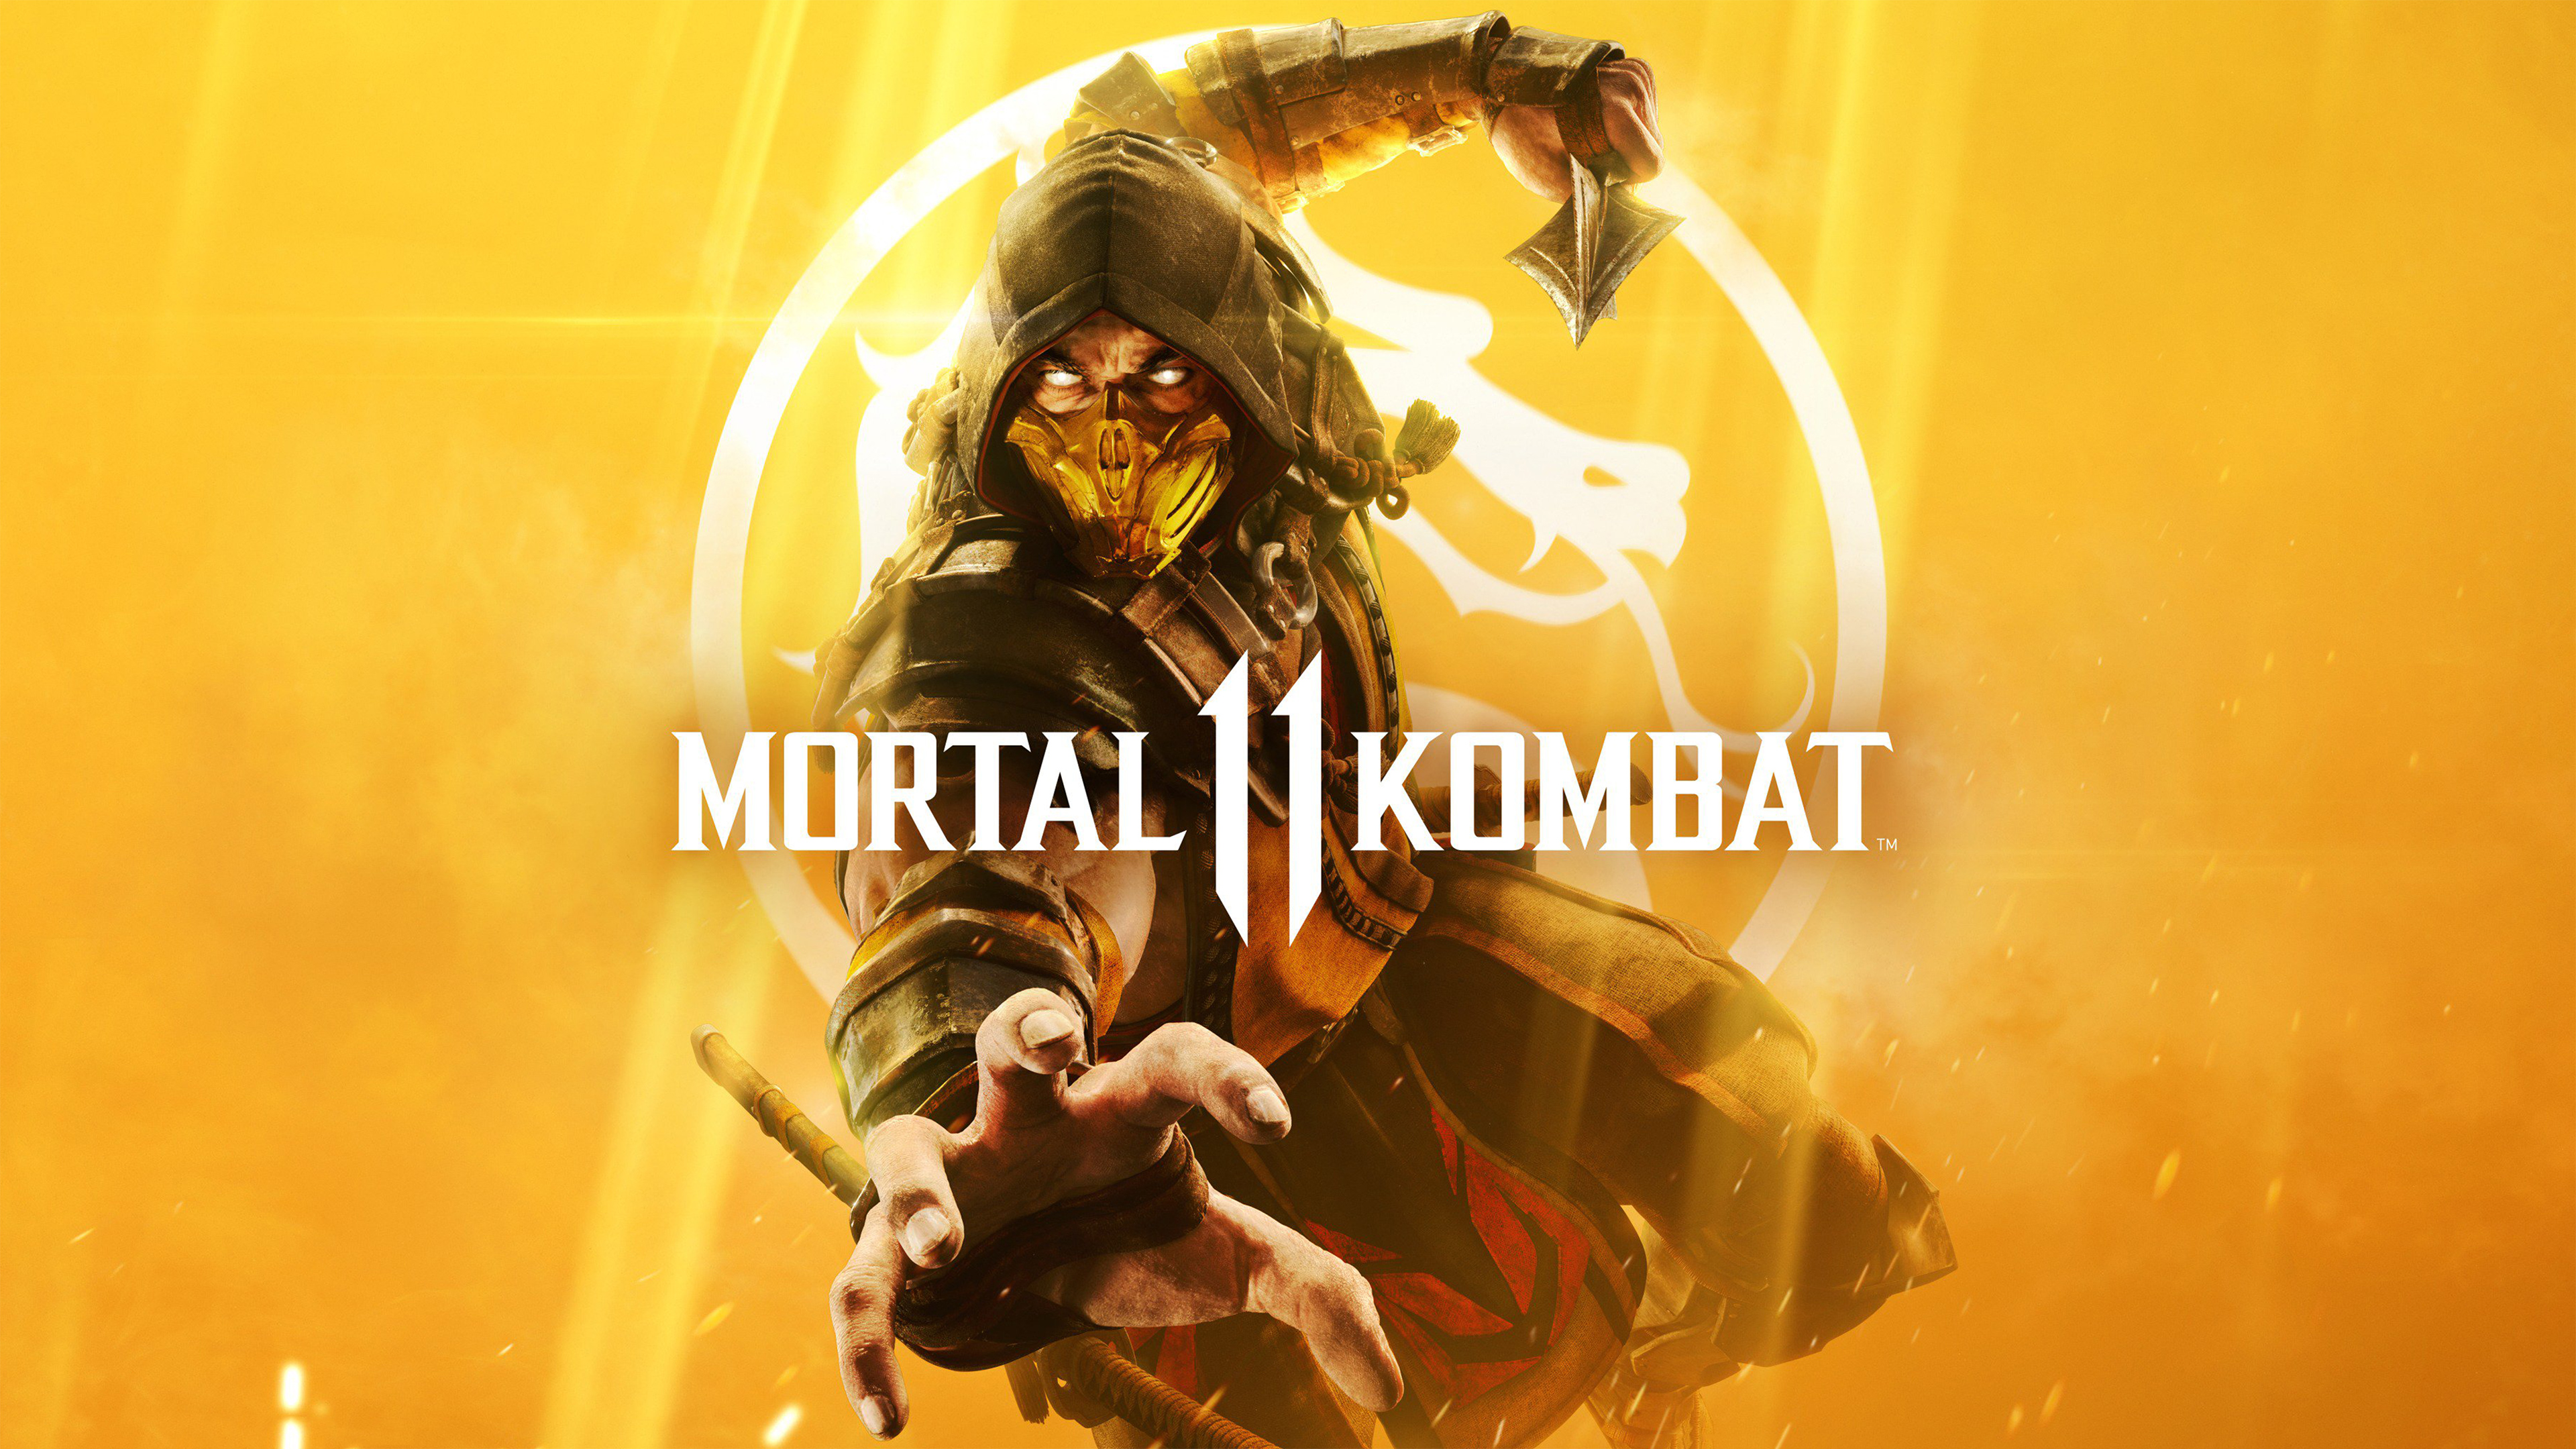 Mortal Kombat 11 Hd Games 4k Wallpapers Images Backgrounds Photos And Pictures